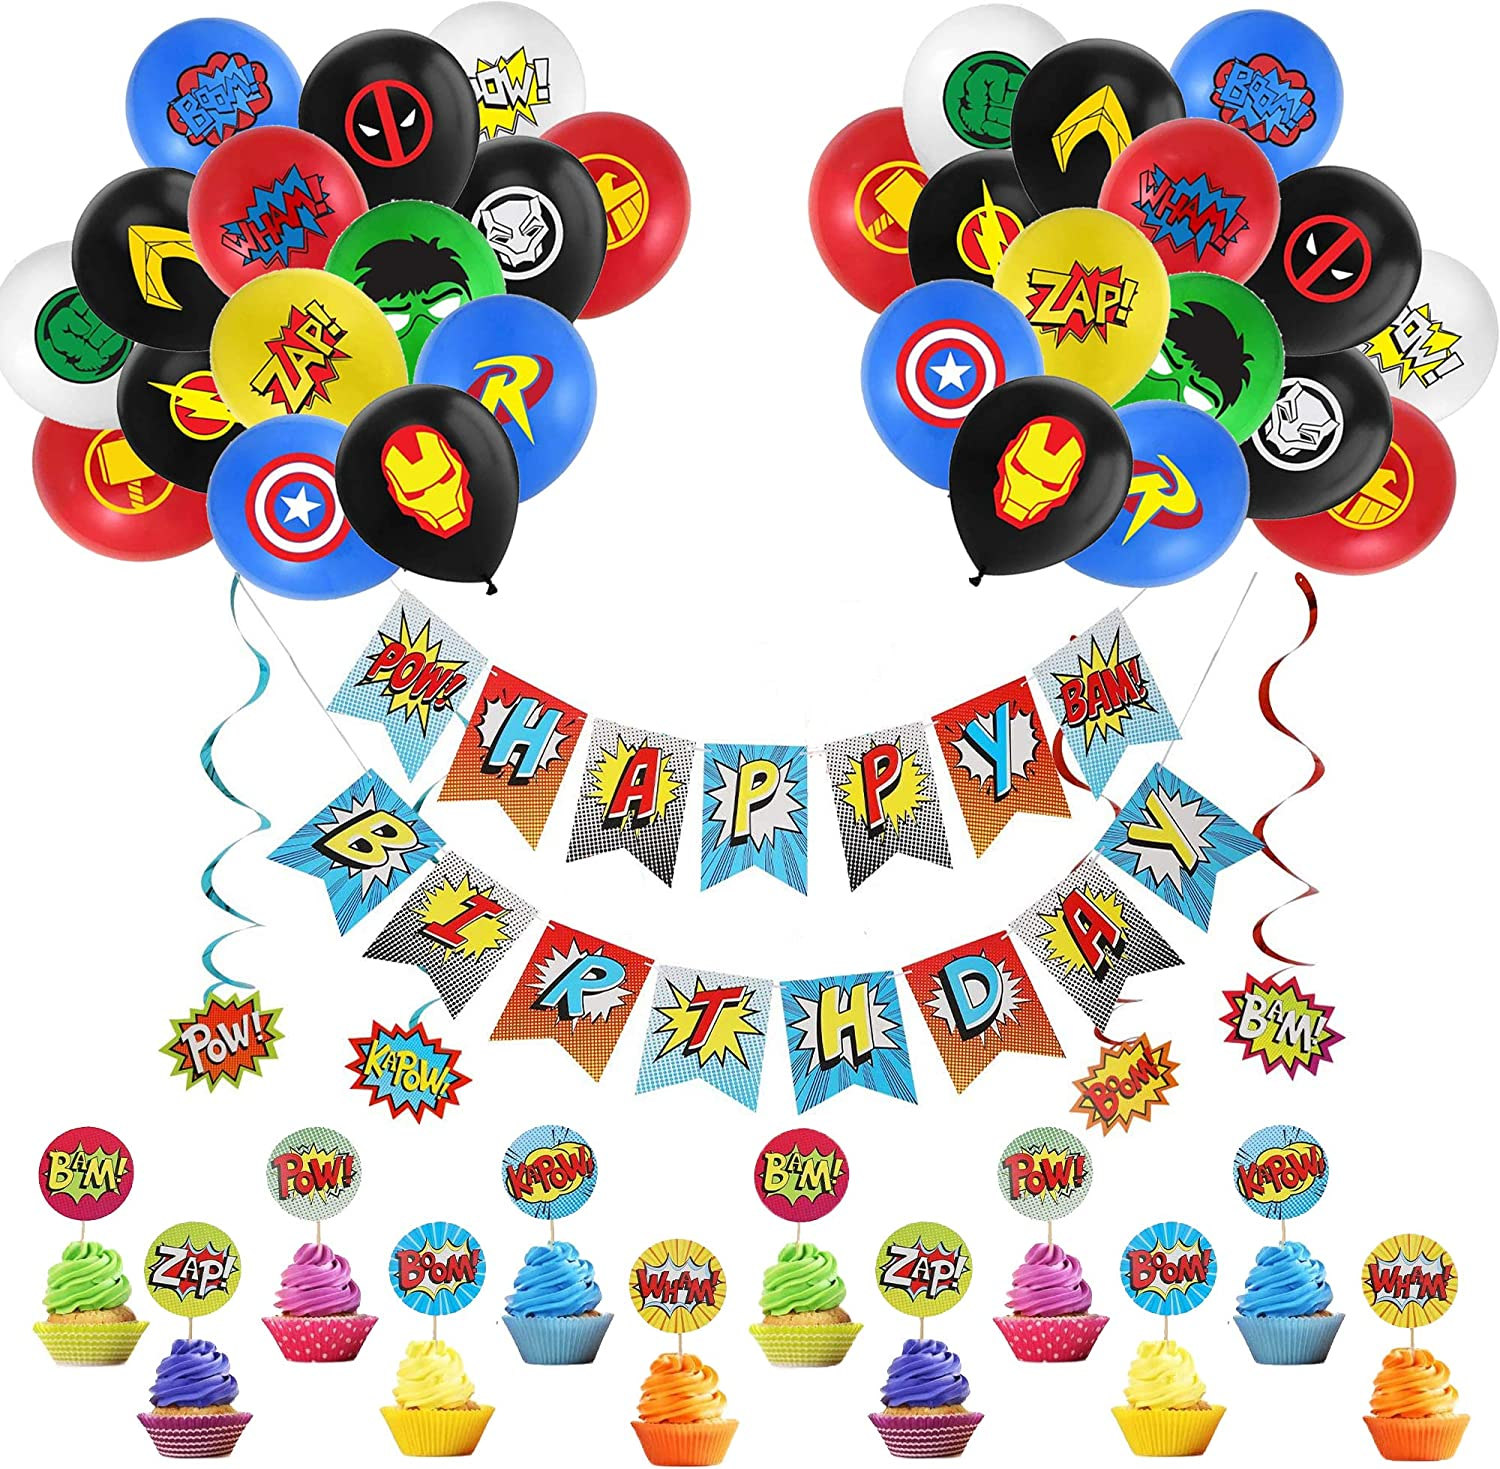 Superhero Cake Toppers Banner Superhero Hanging Swirl Decorations Balloons for Children Party Decoration Kids Birthday Party Decoration Supplies Superhero Avengers Party Supplies Decorations